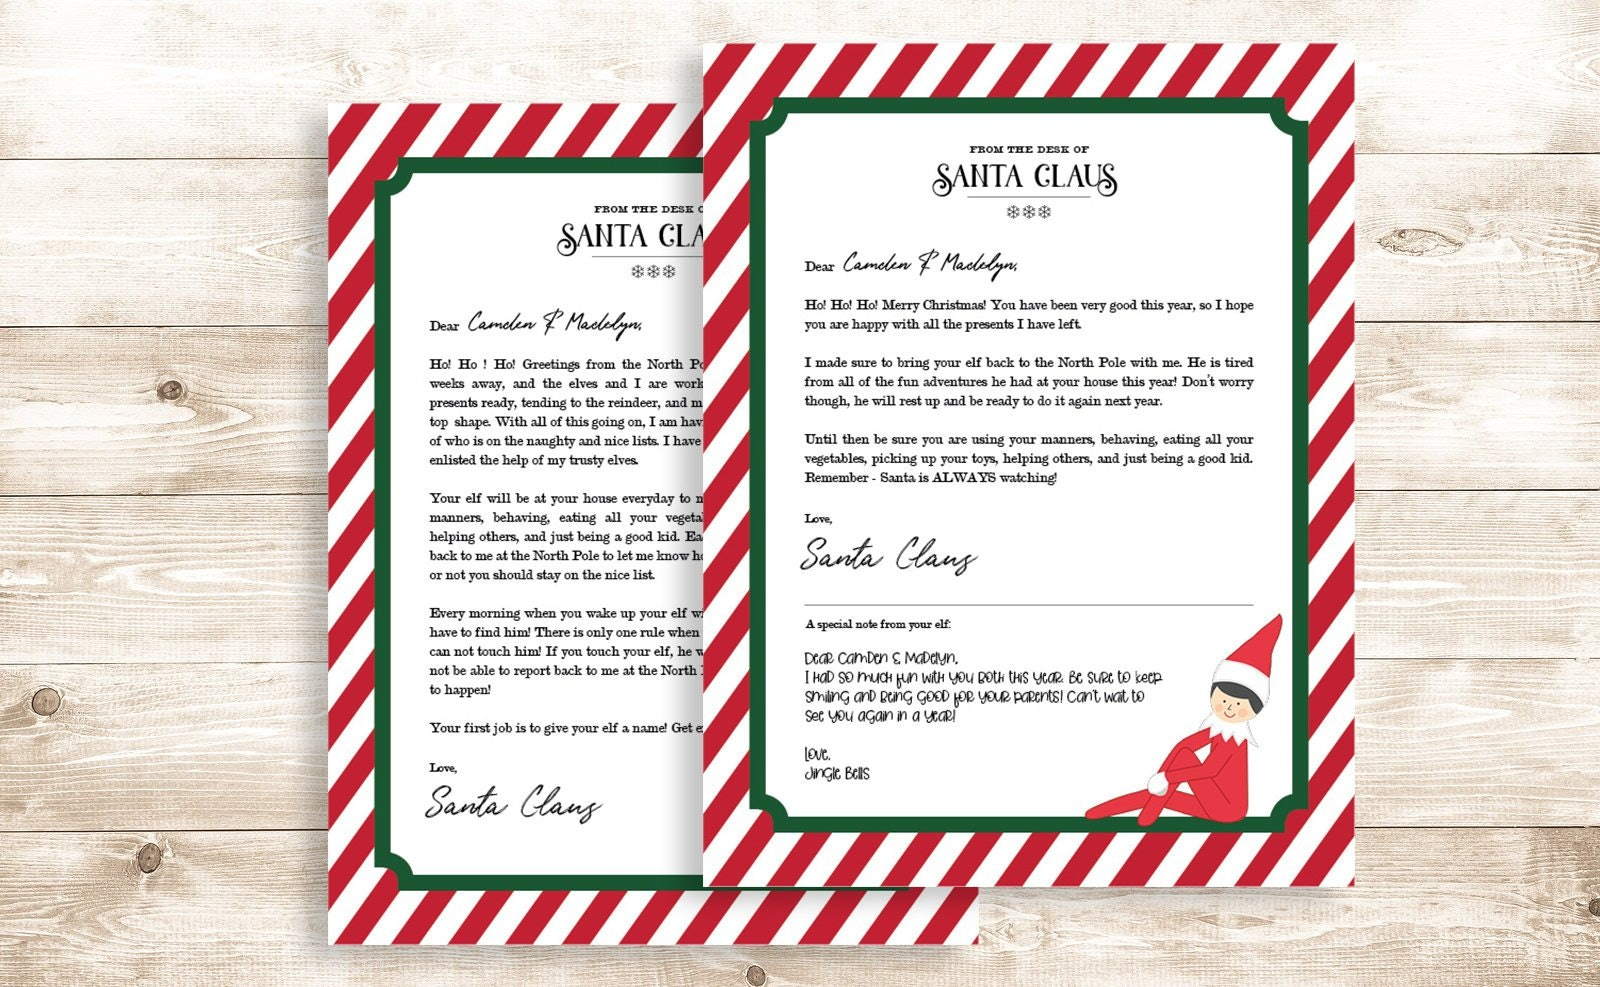 15 Elf On The Shelf Printable Letters From Santa That'll